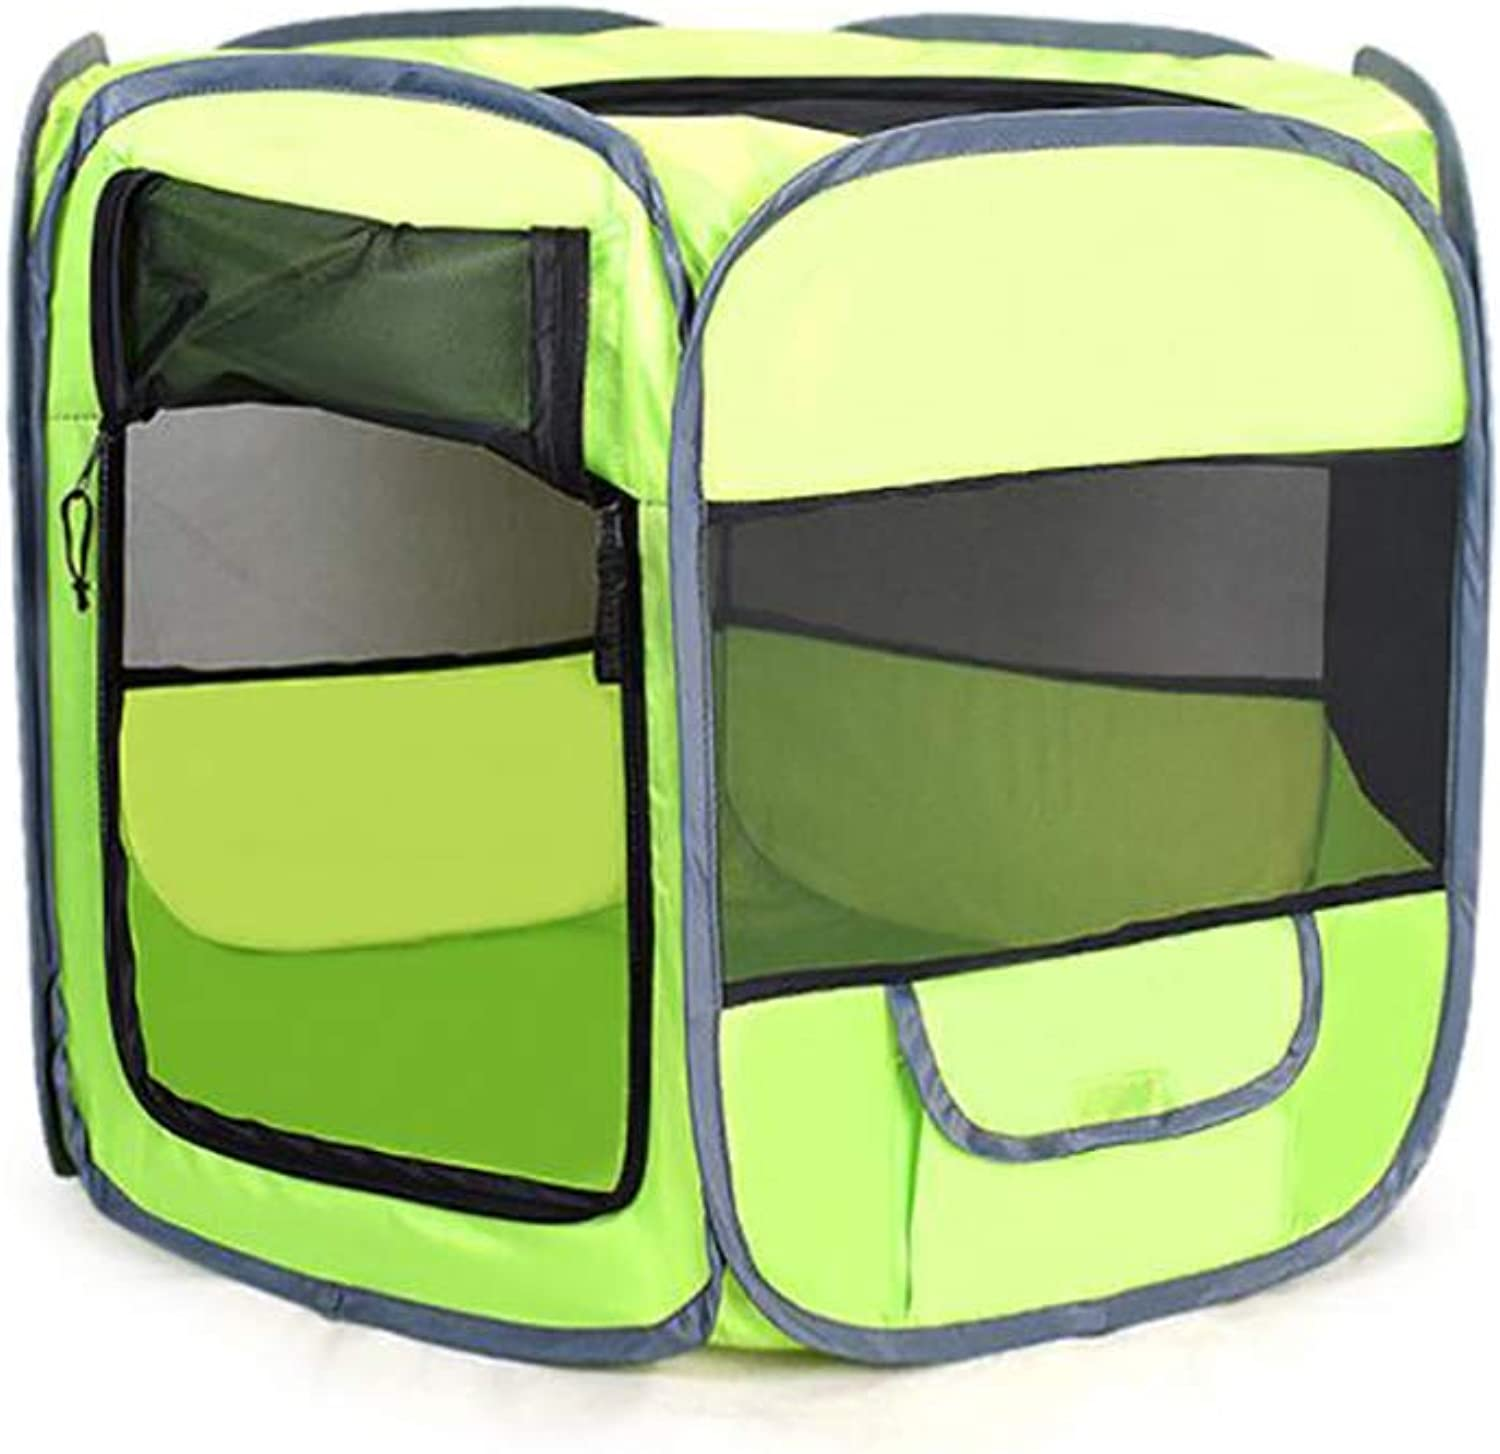 Folding Pet Tent,Car Kennel 600D Oxford Cloth Cat Dog Delivery Room Pet Fence,Suitable for Indoor and Outdoor Use,XS